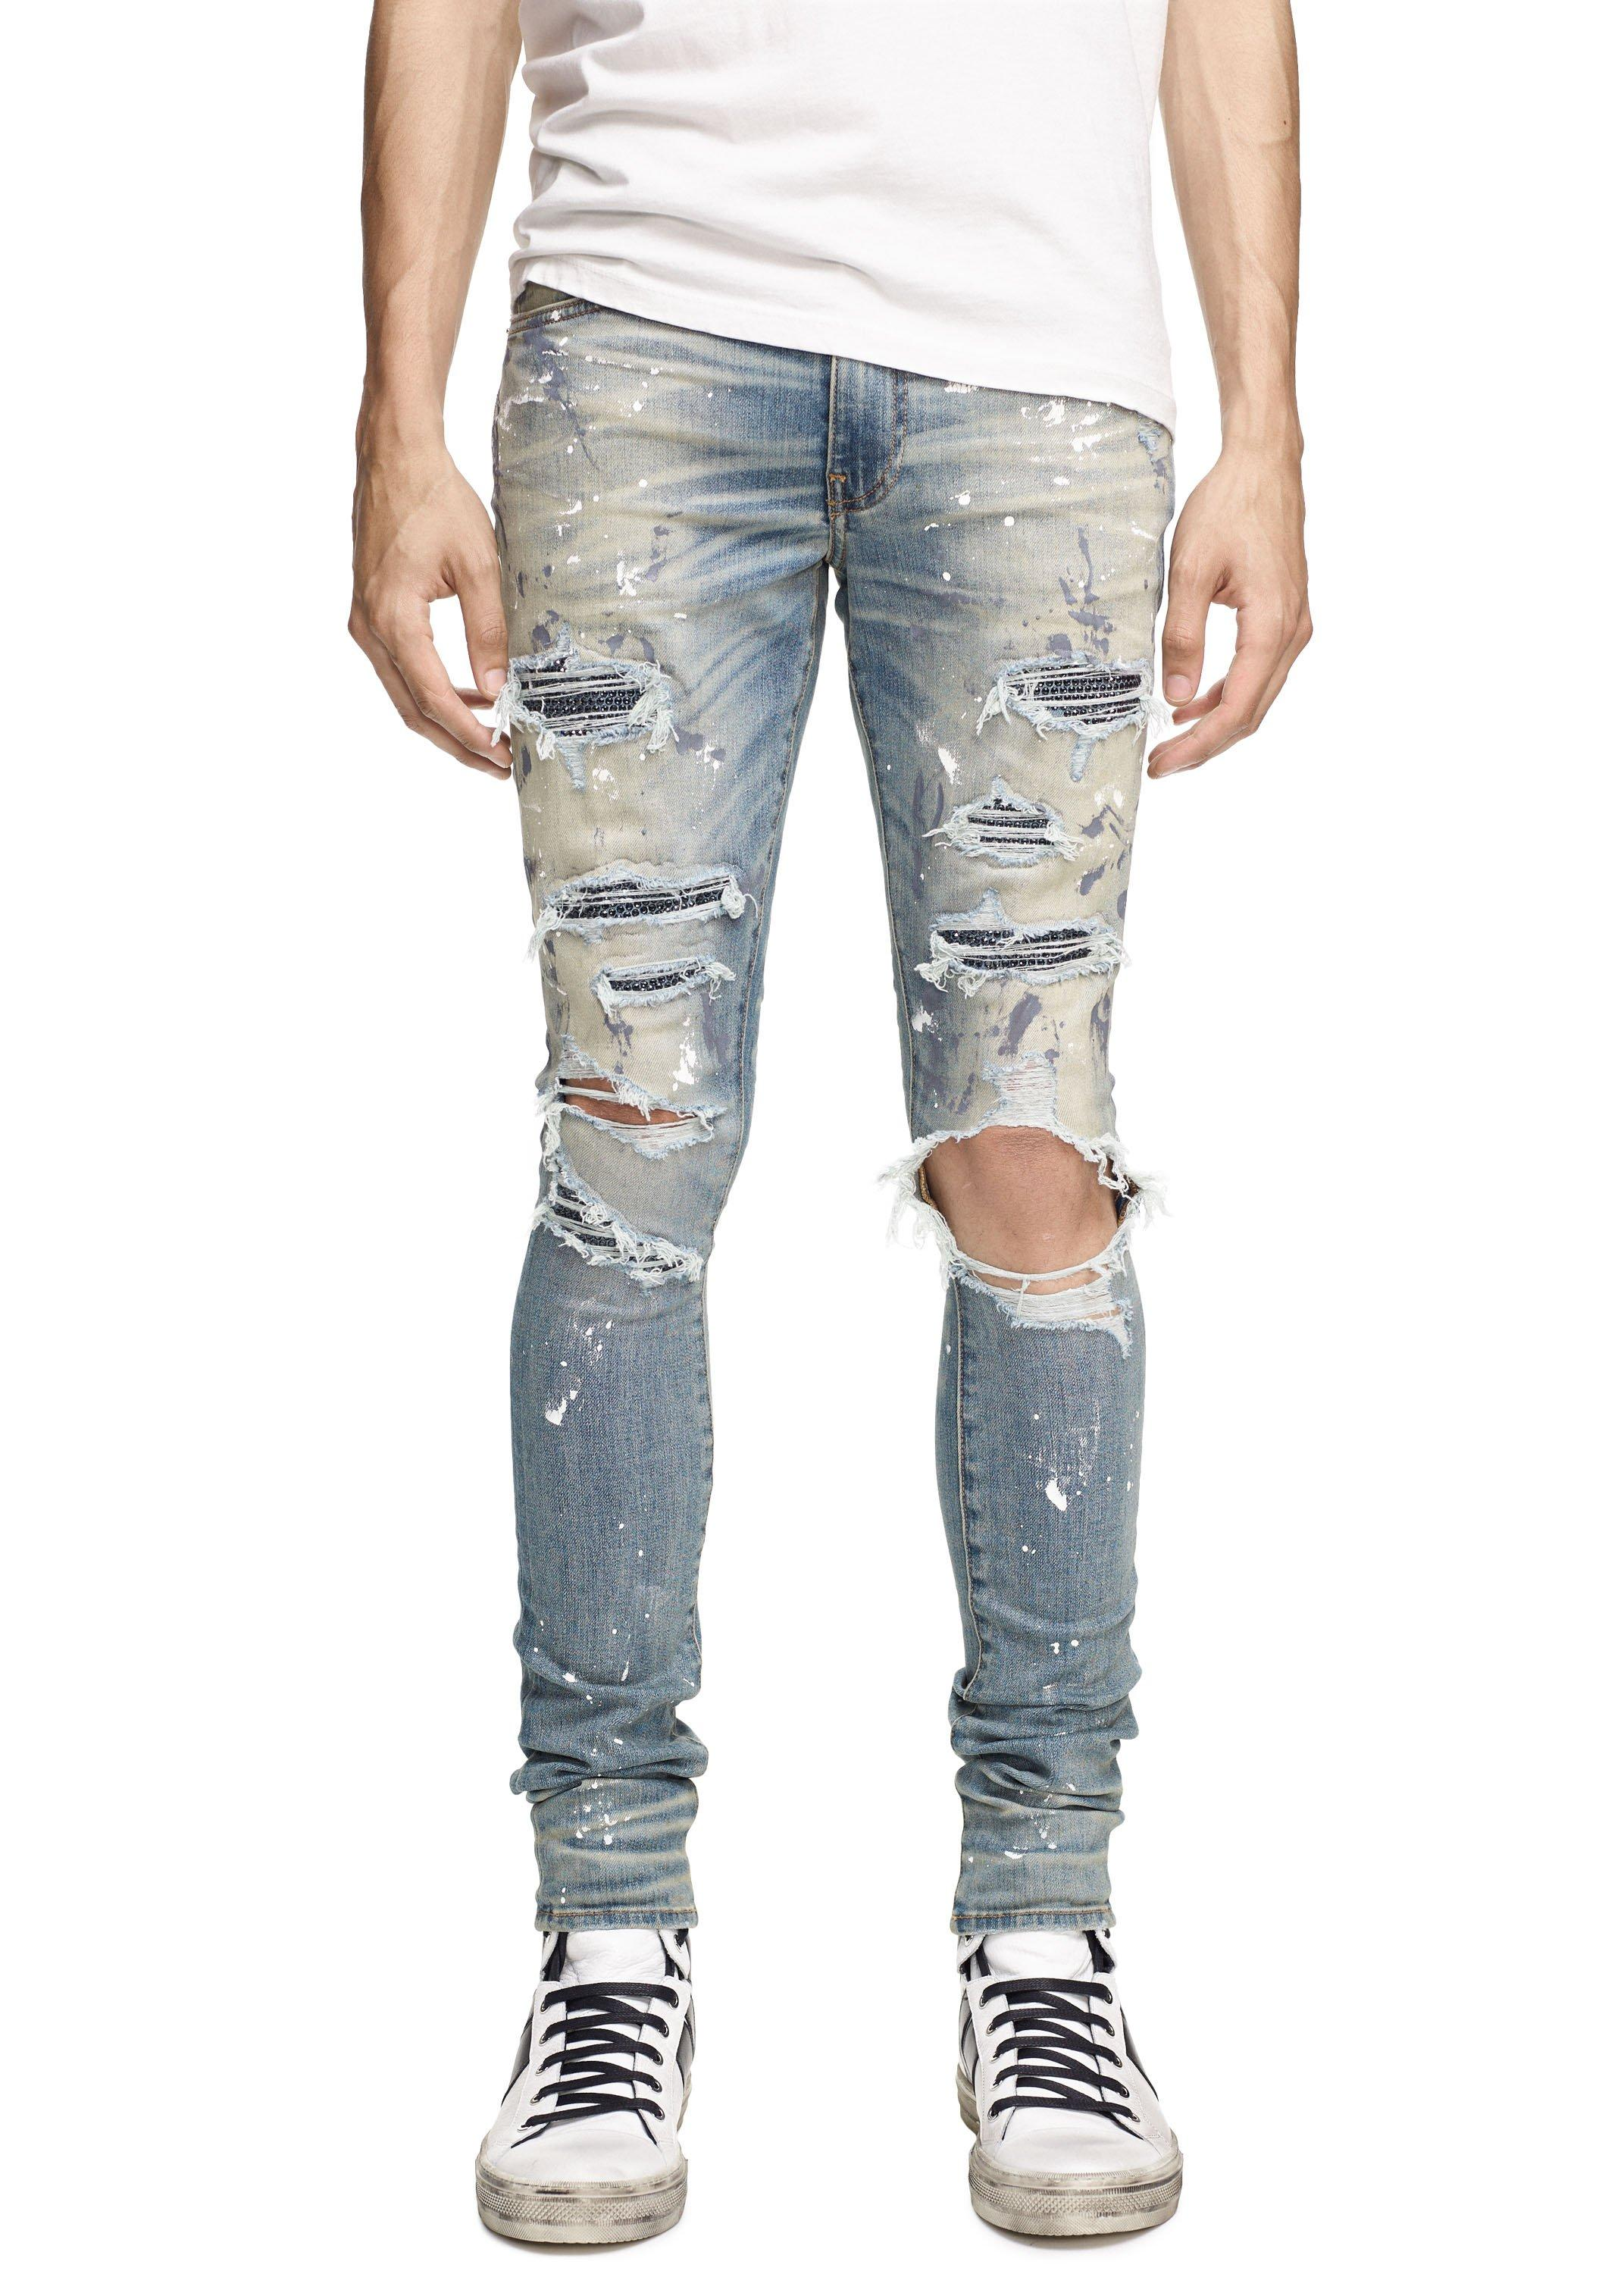 DiZNEW Classic Indigo Crystal Paint distressed jeans For Men